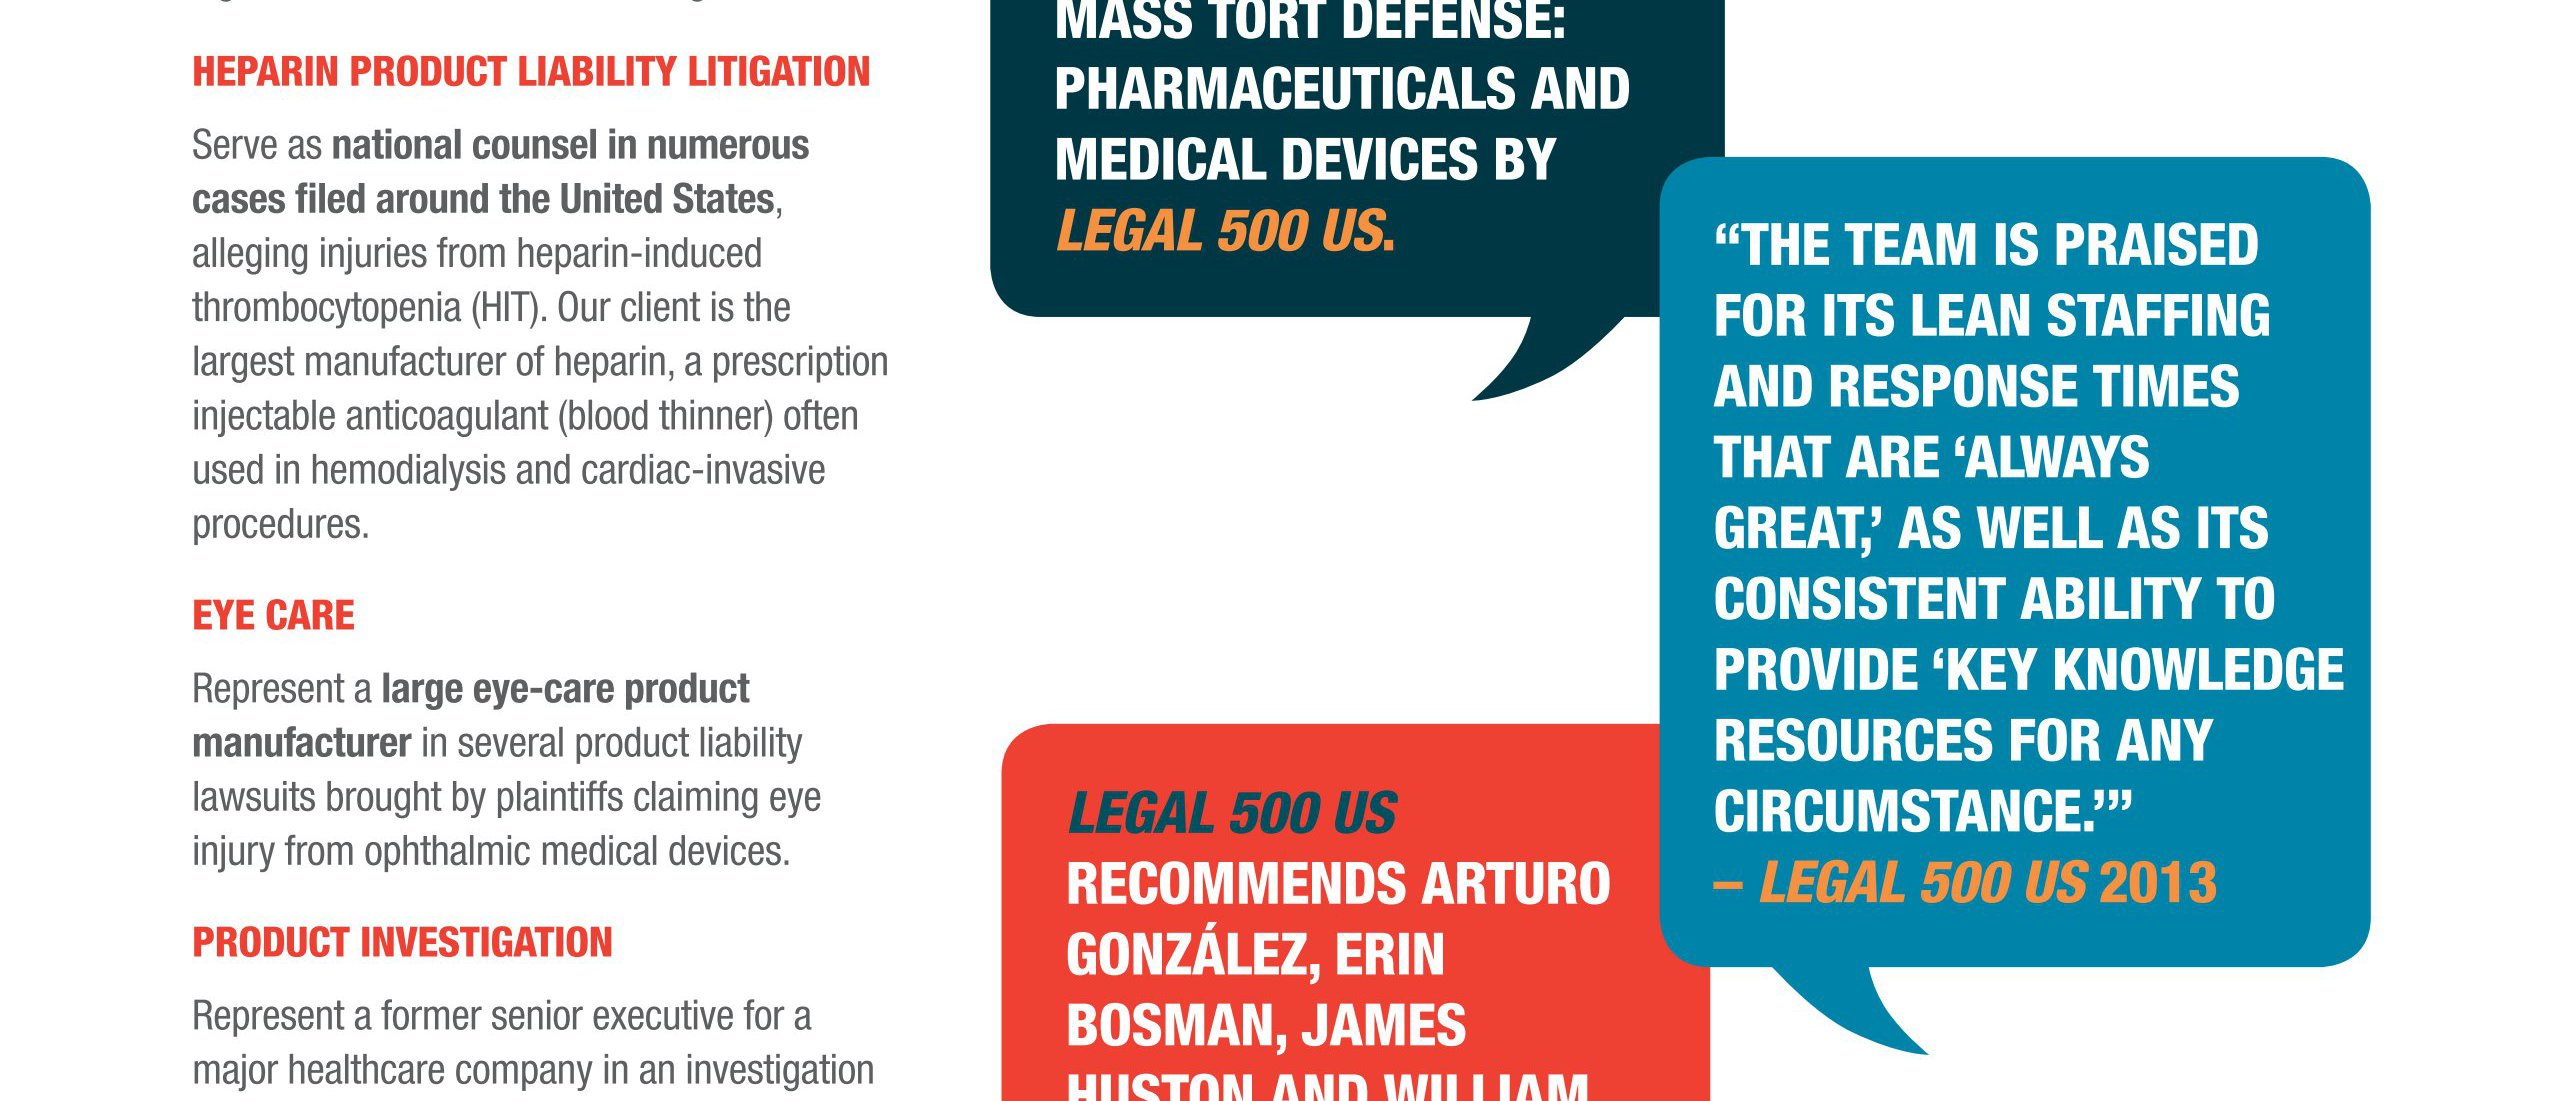 Product Liability 2013 Year in Review